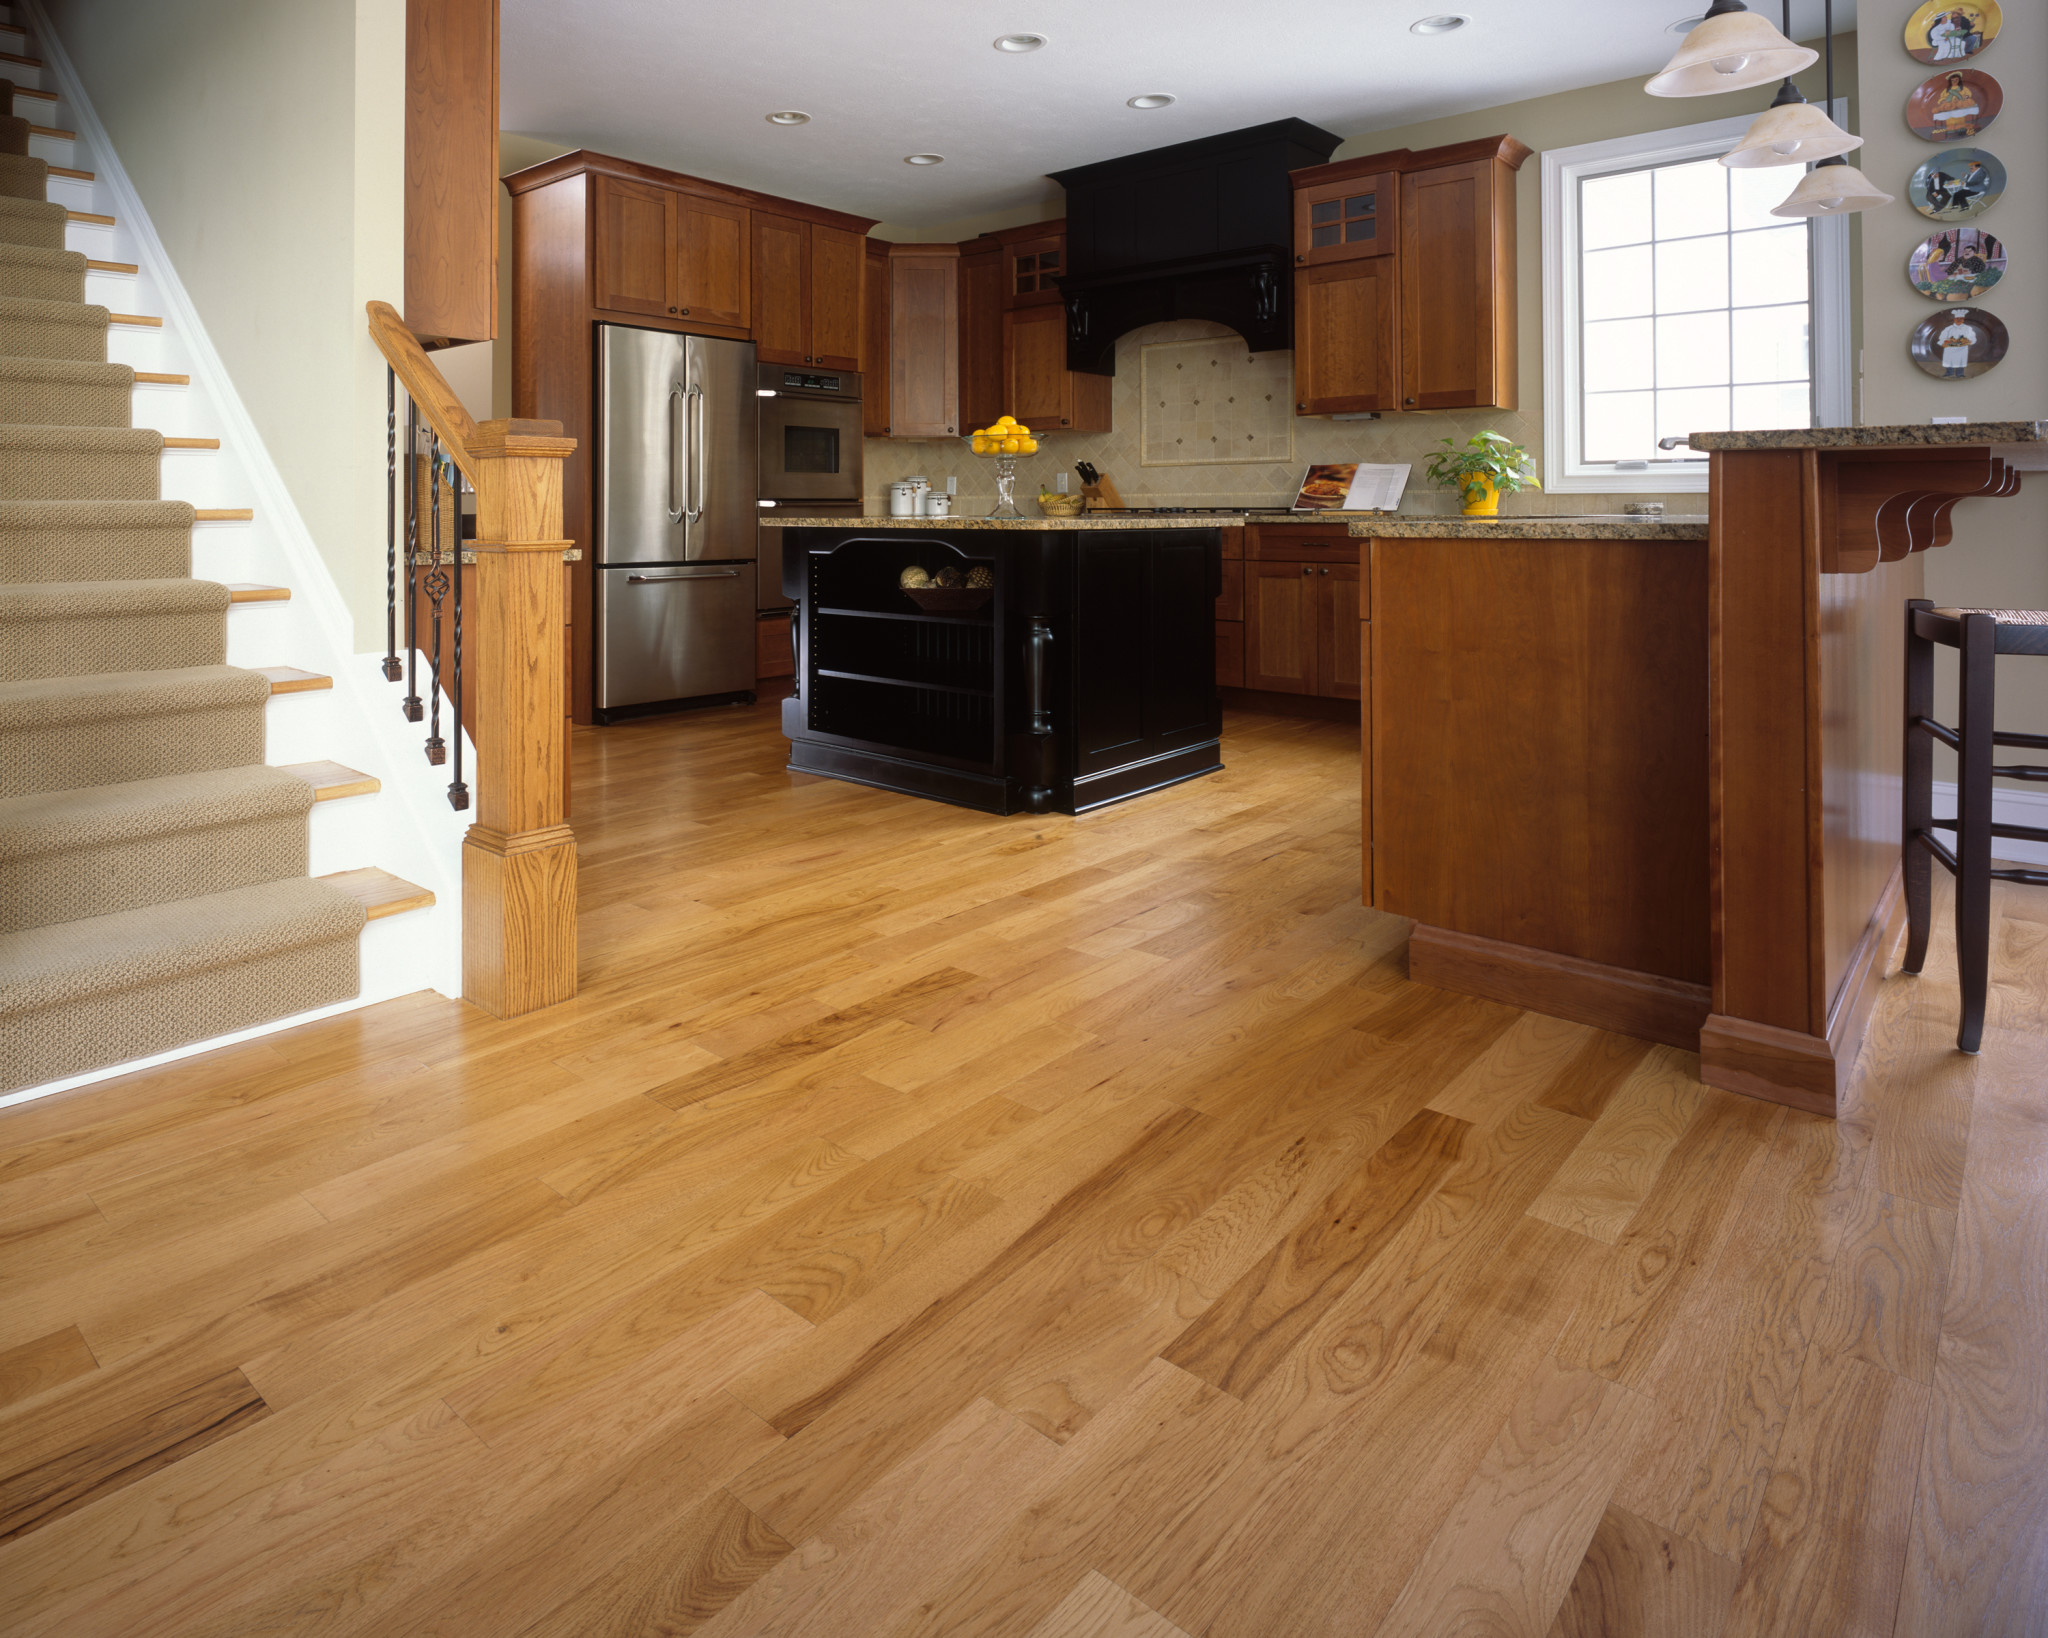 Tile Flooring In Kitchen Wood Floors Tile Linoleum Jmarvinhandyman